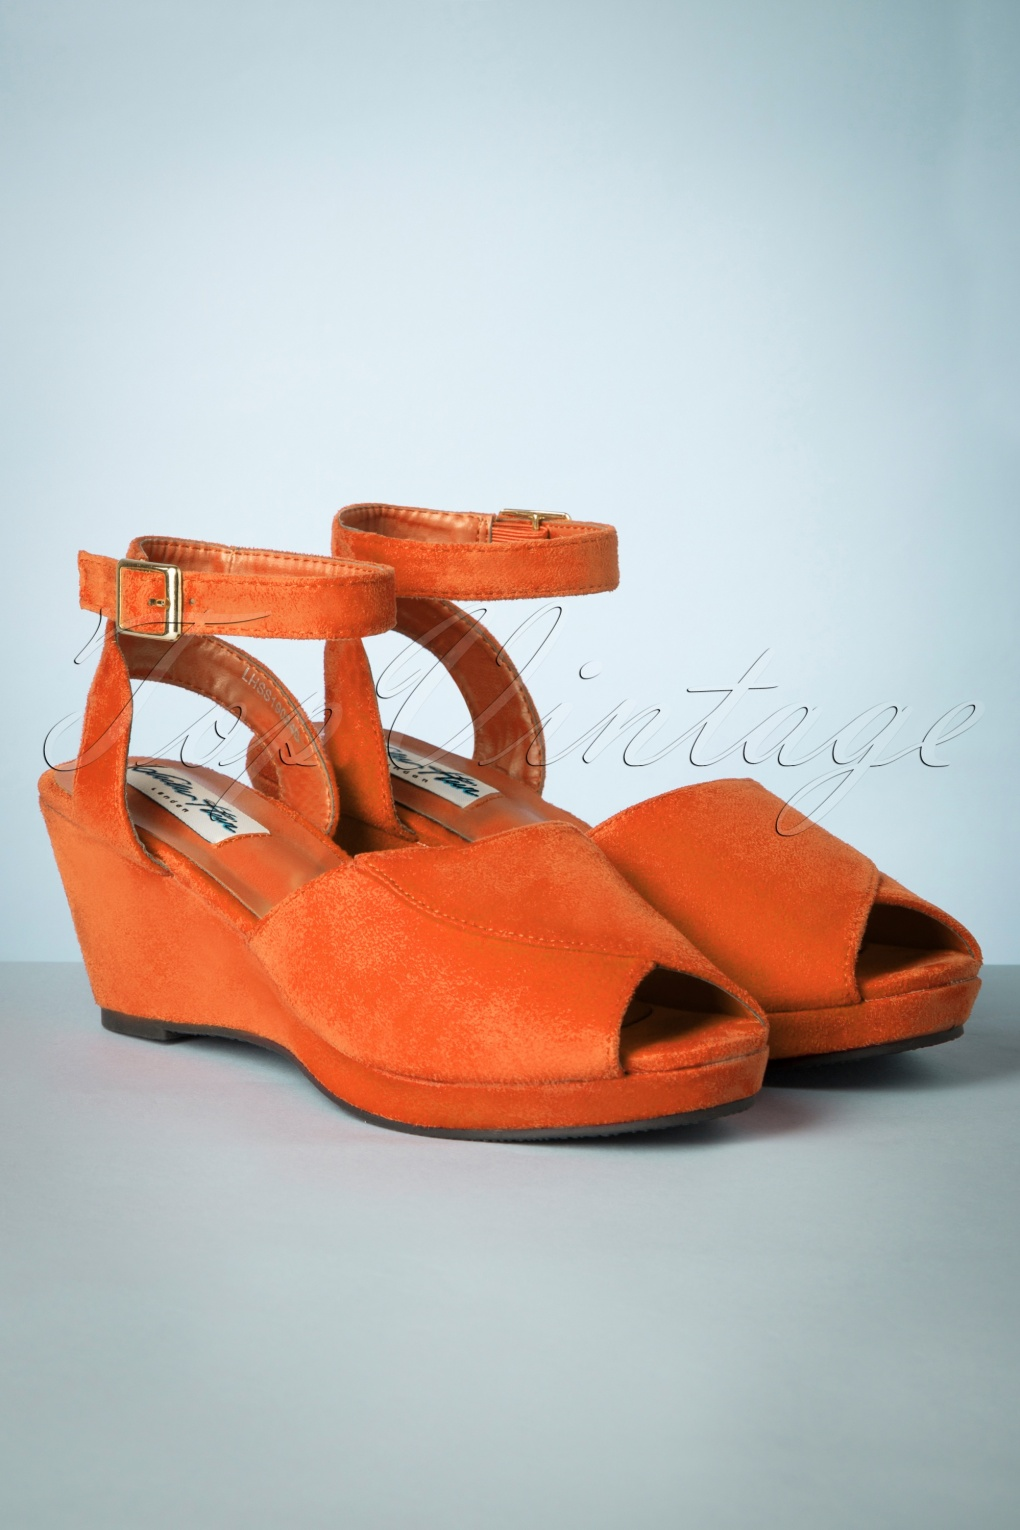 60s Dresses & 60s Style Dresses UK 60s Simona Wedge Sandals in Orange £33.82 AT vintagedancer.com